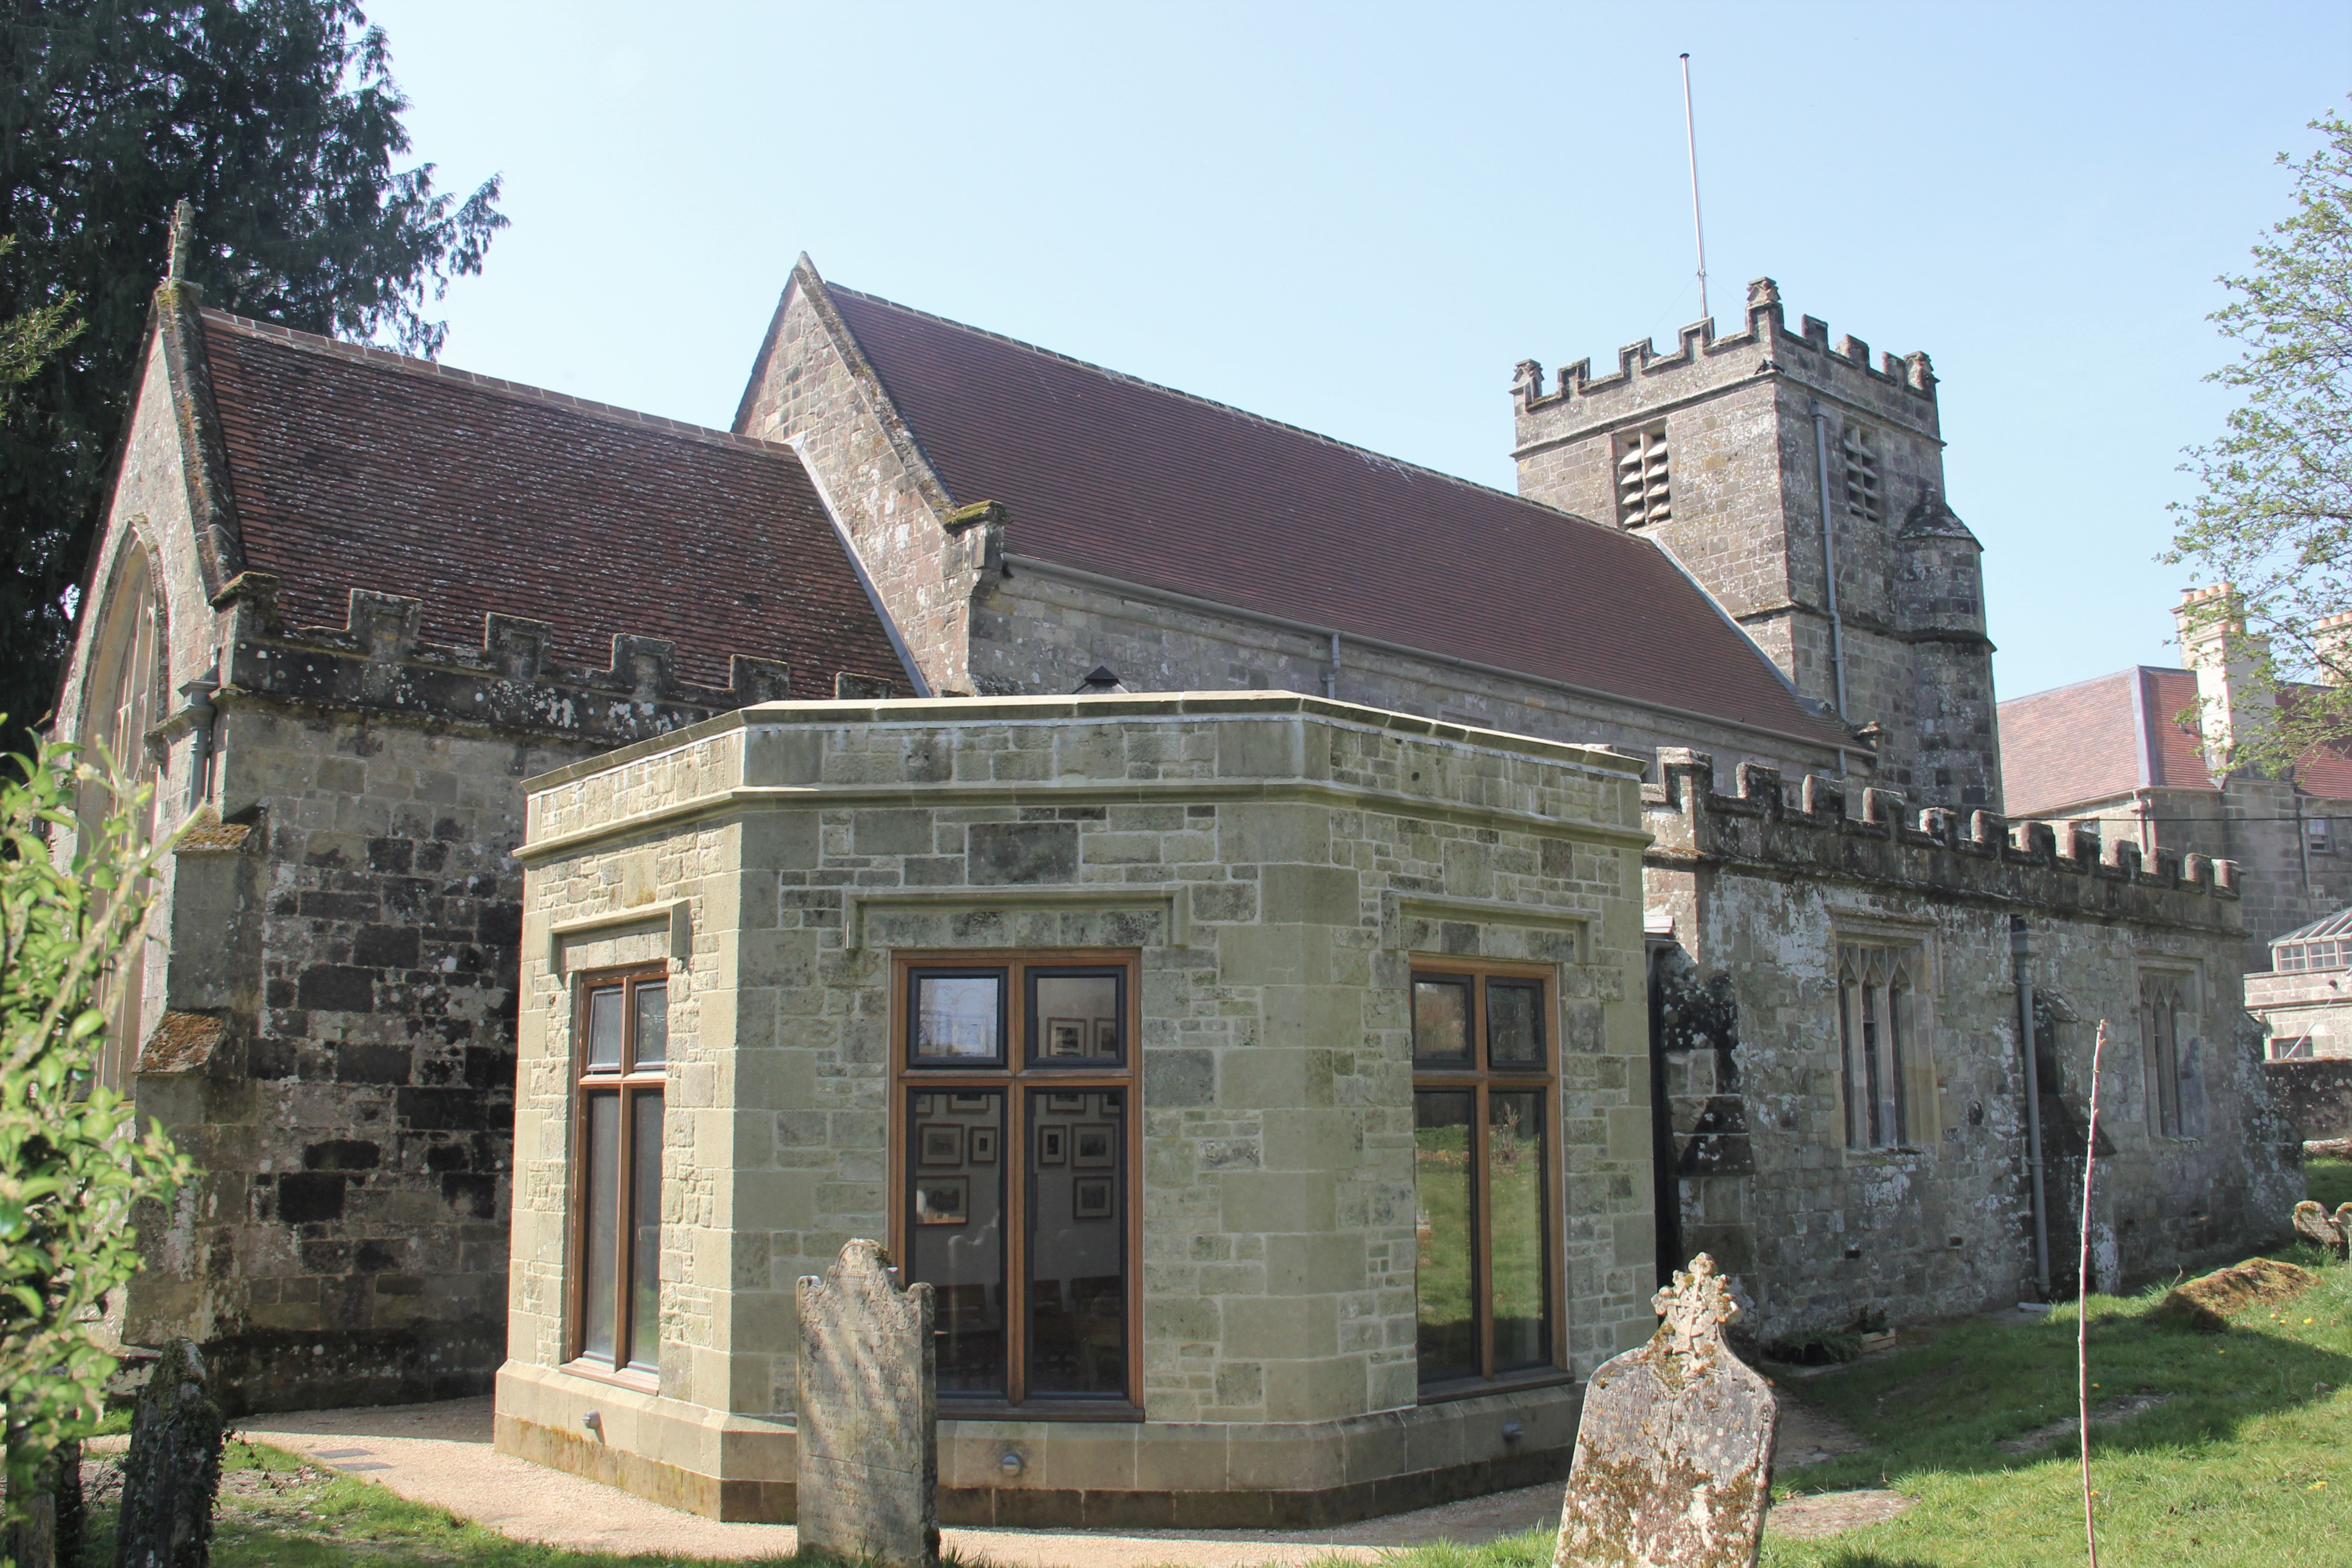 St Andrews's Church, Donhead St Andrew, Wiltshire